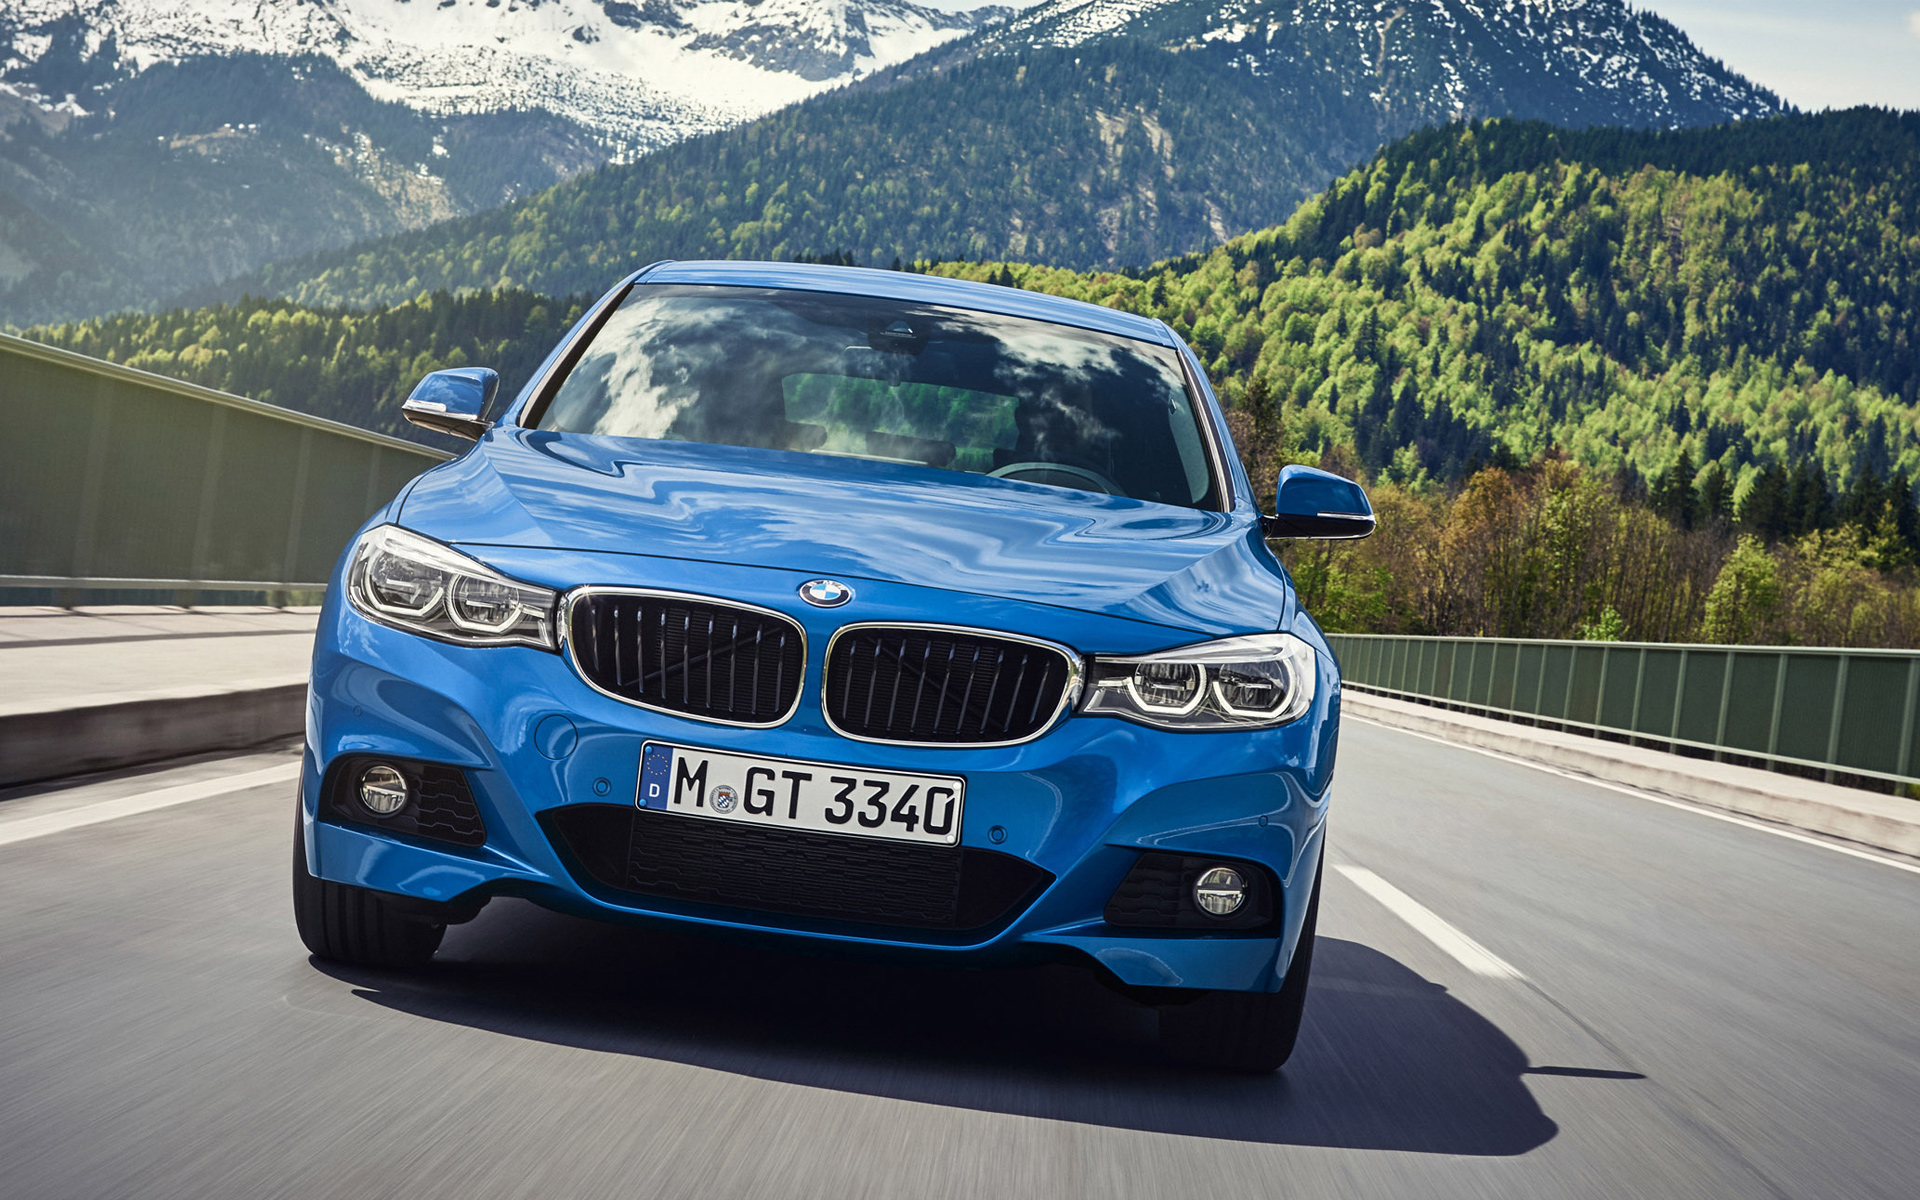 BMW 3 series - Top selling executive sedans and saloons